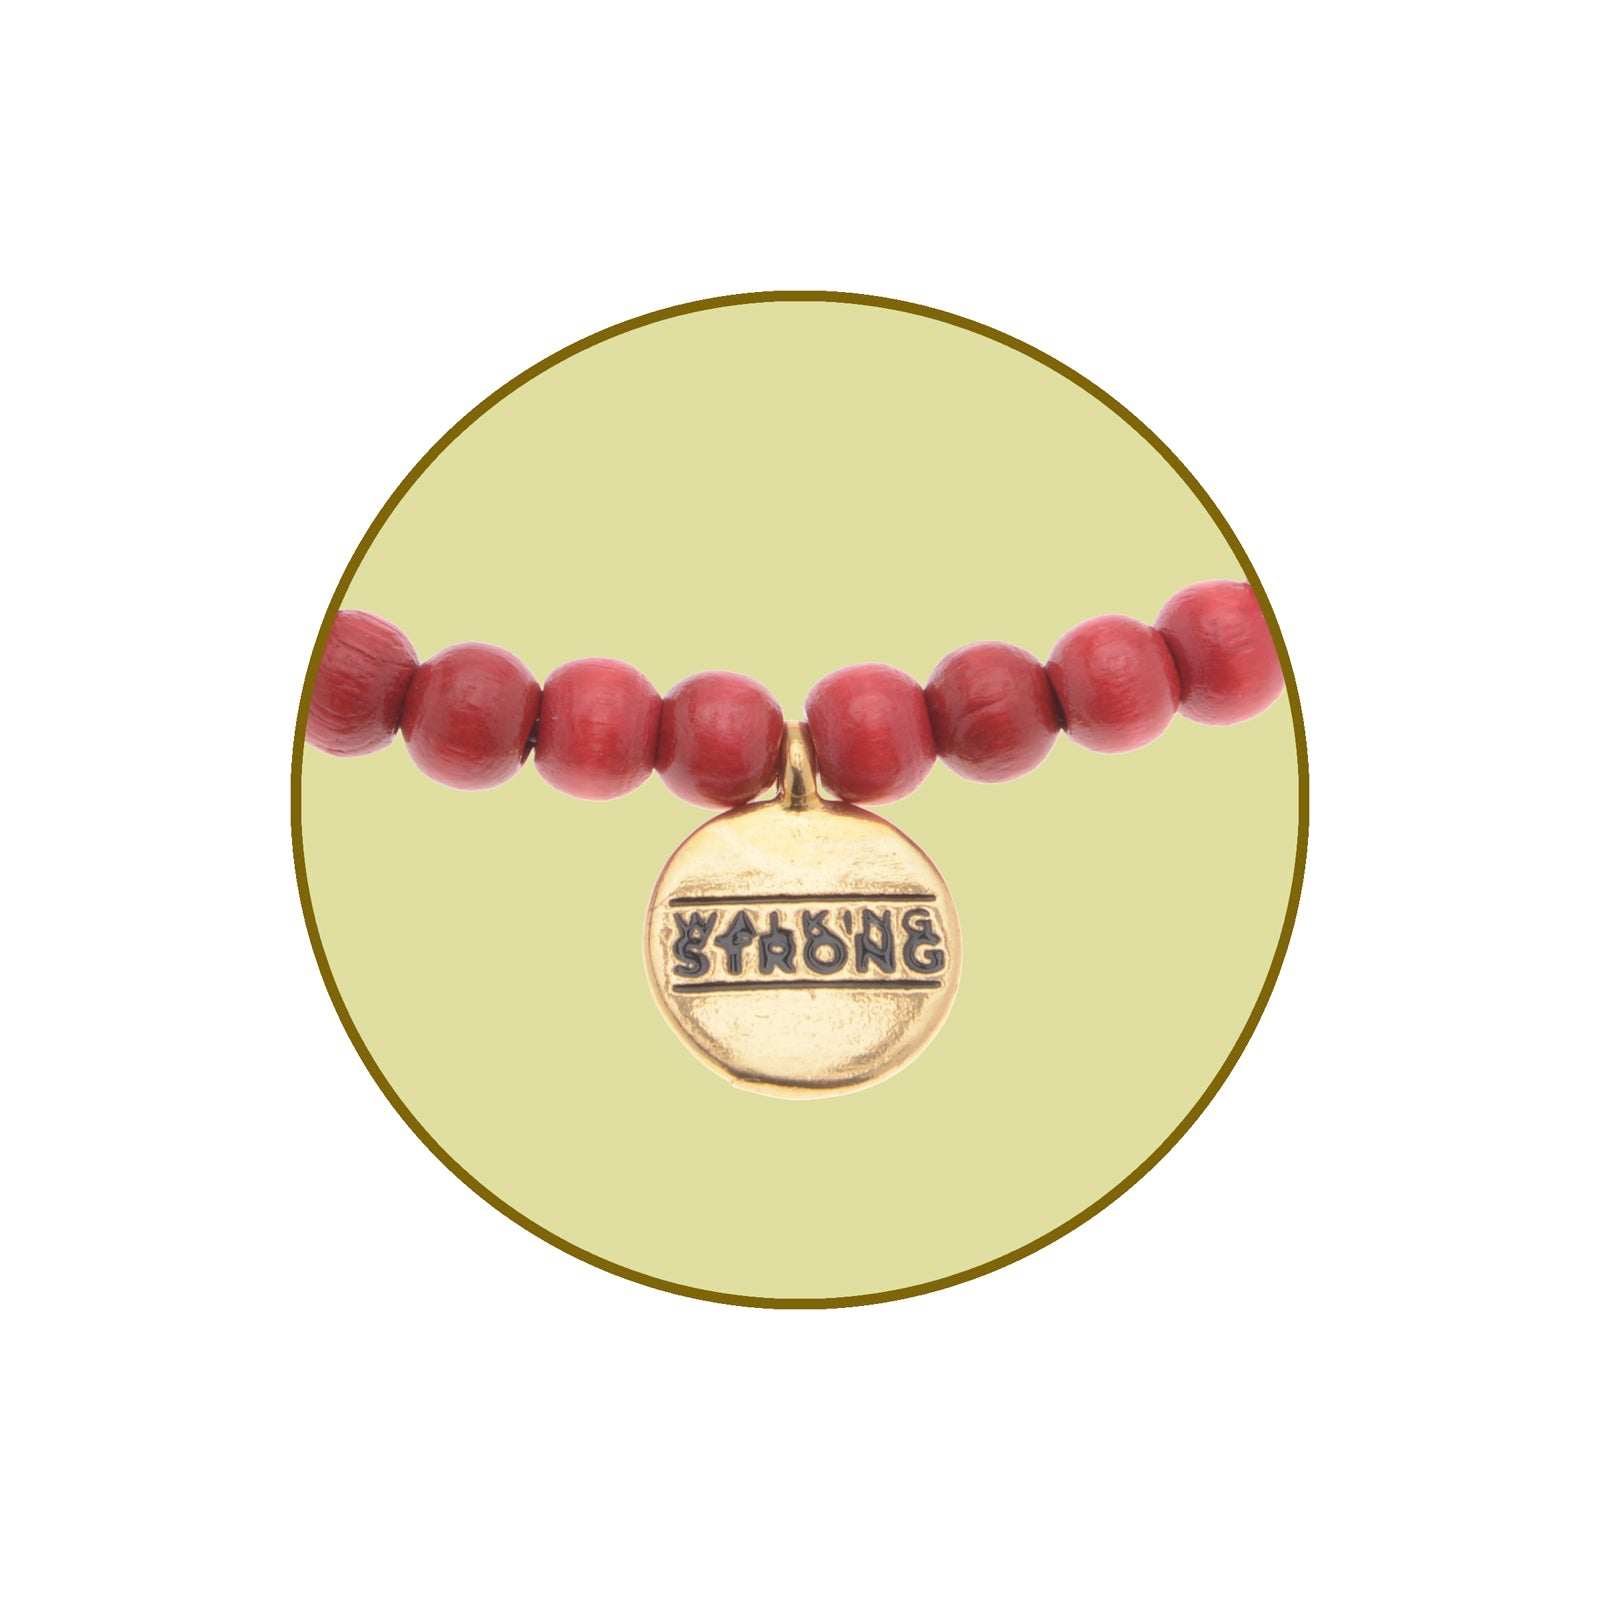 Walking Strong Bracelet - Small Red Wood Beads